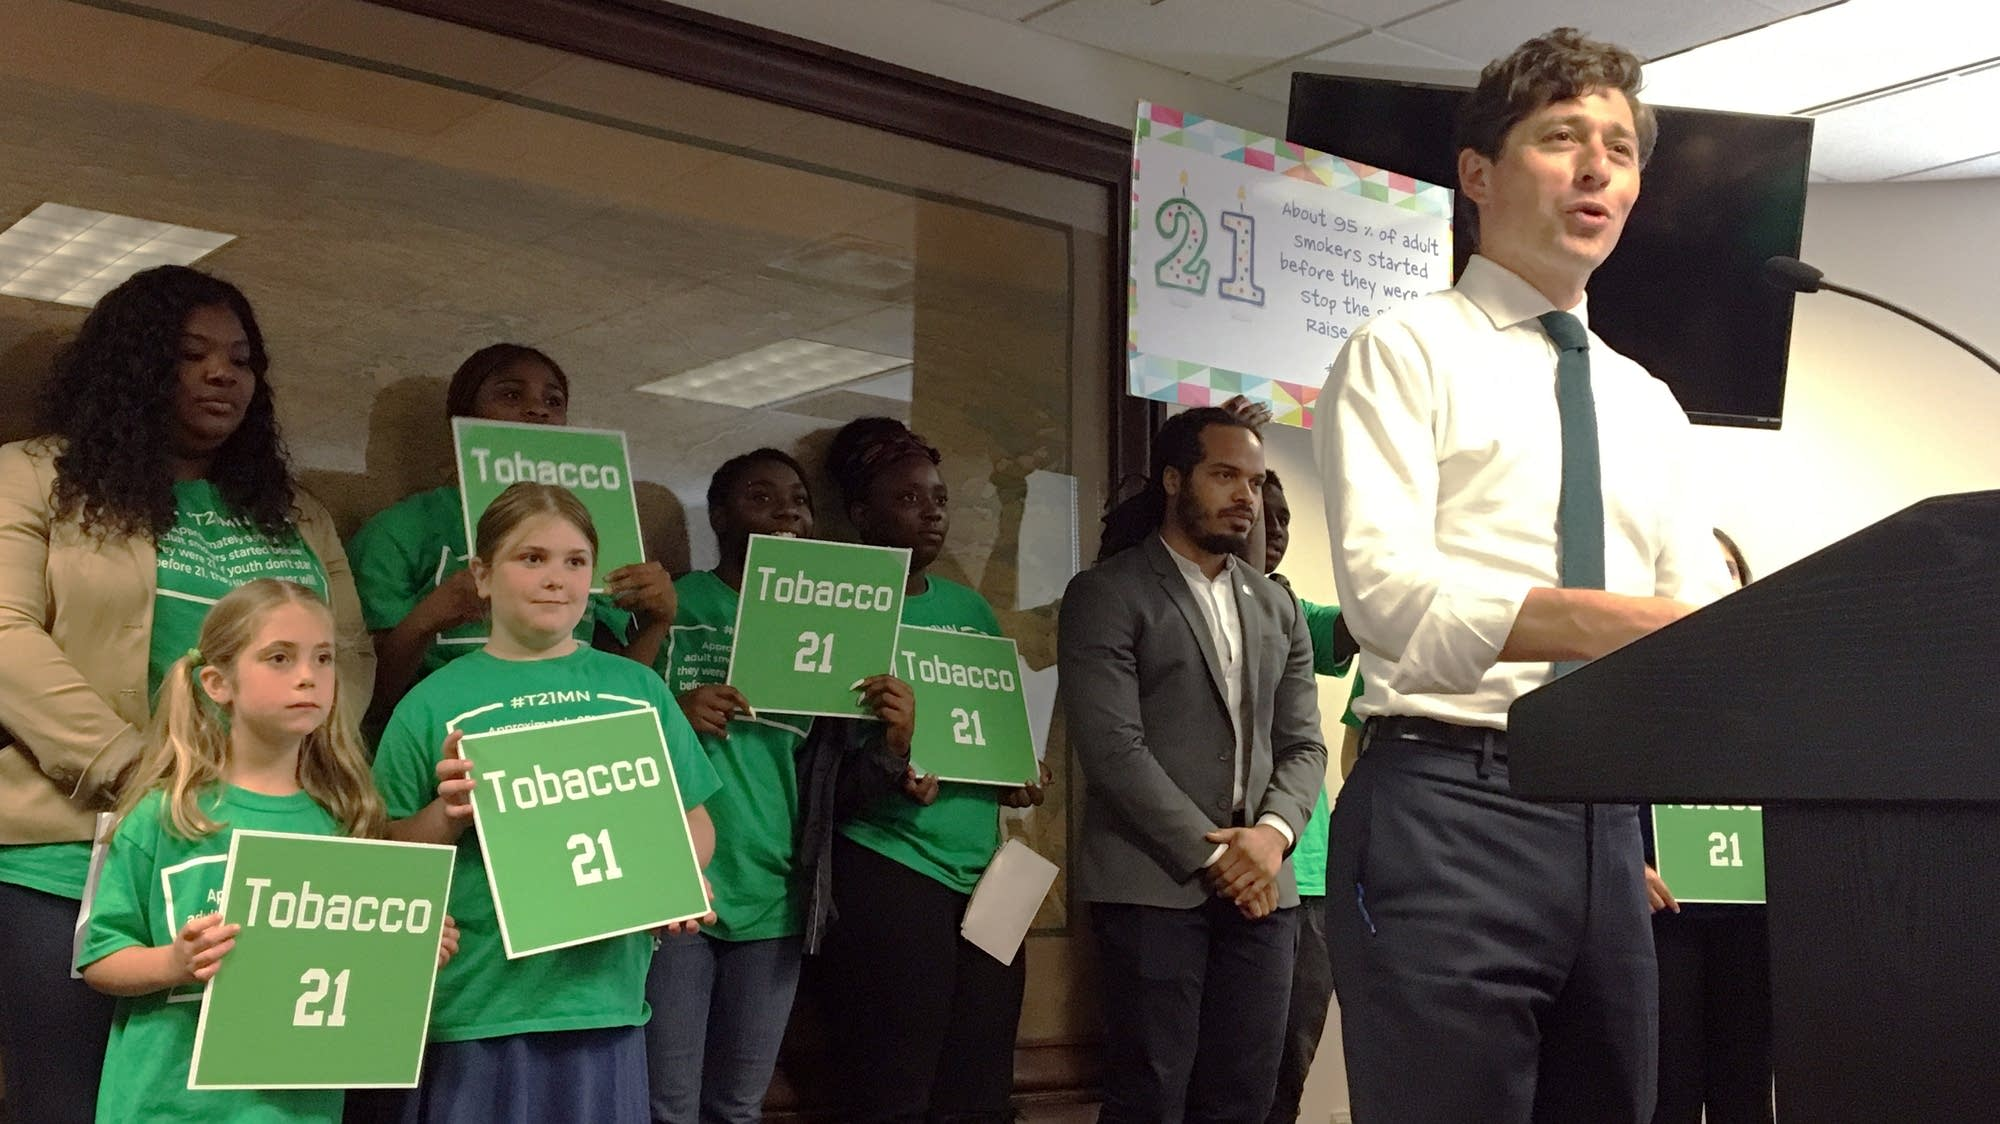 Minneapolis mayor Jacob Frey congratulates young supporters.